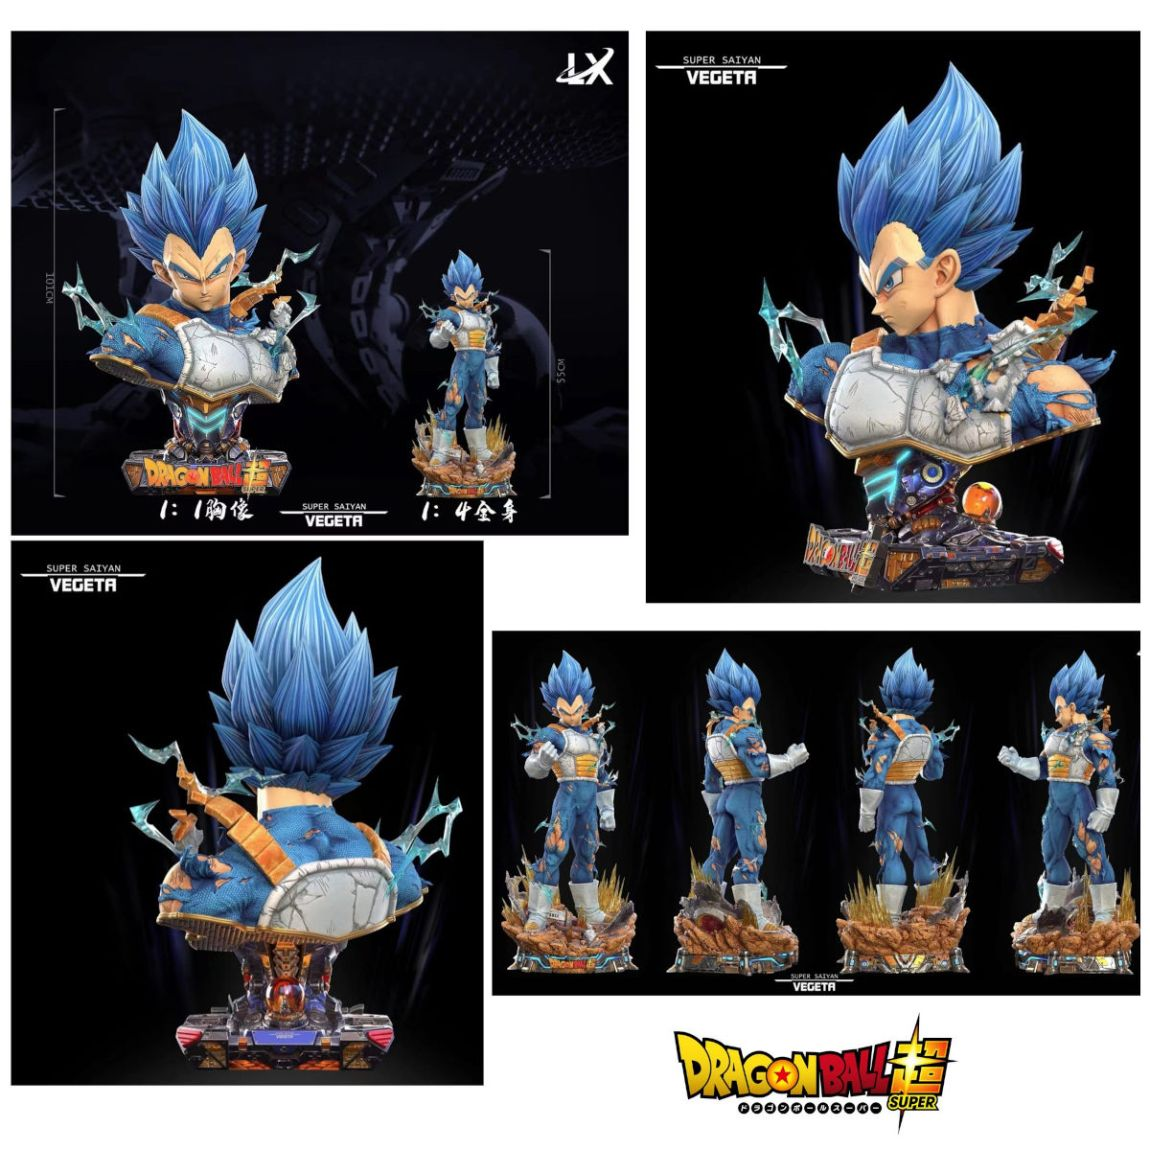 Vegeta from Dragon Ball Z and Super gets new bust and figure